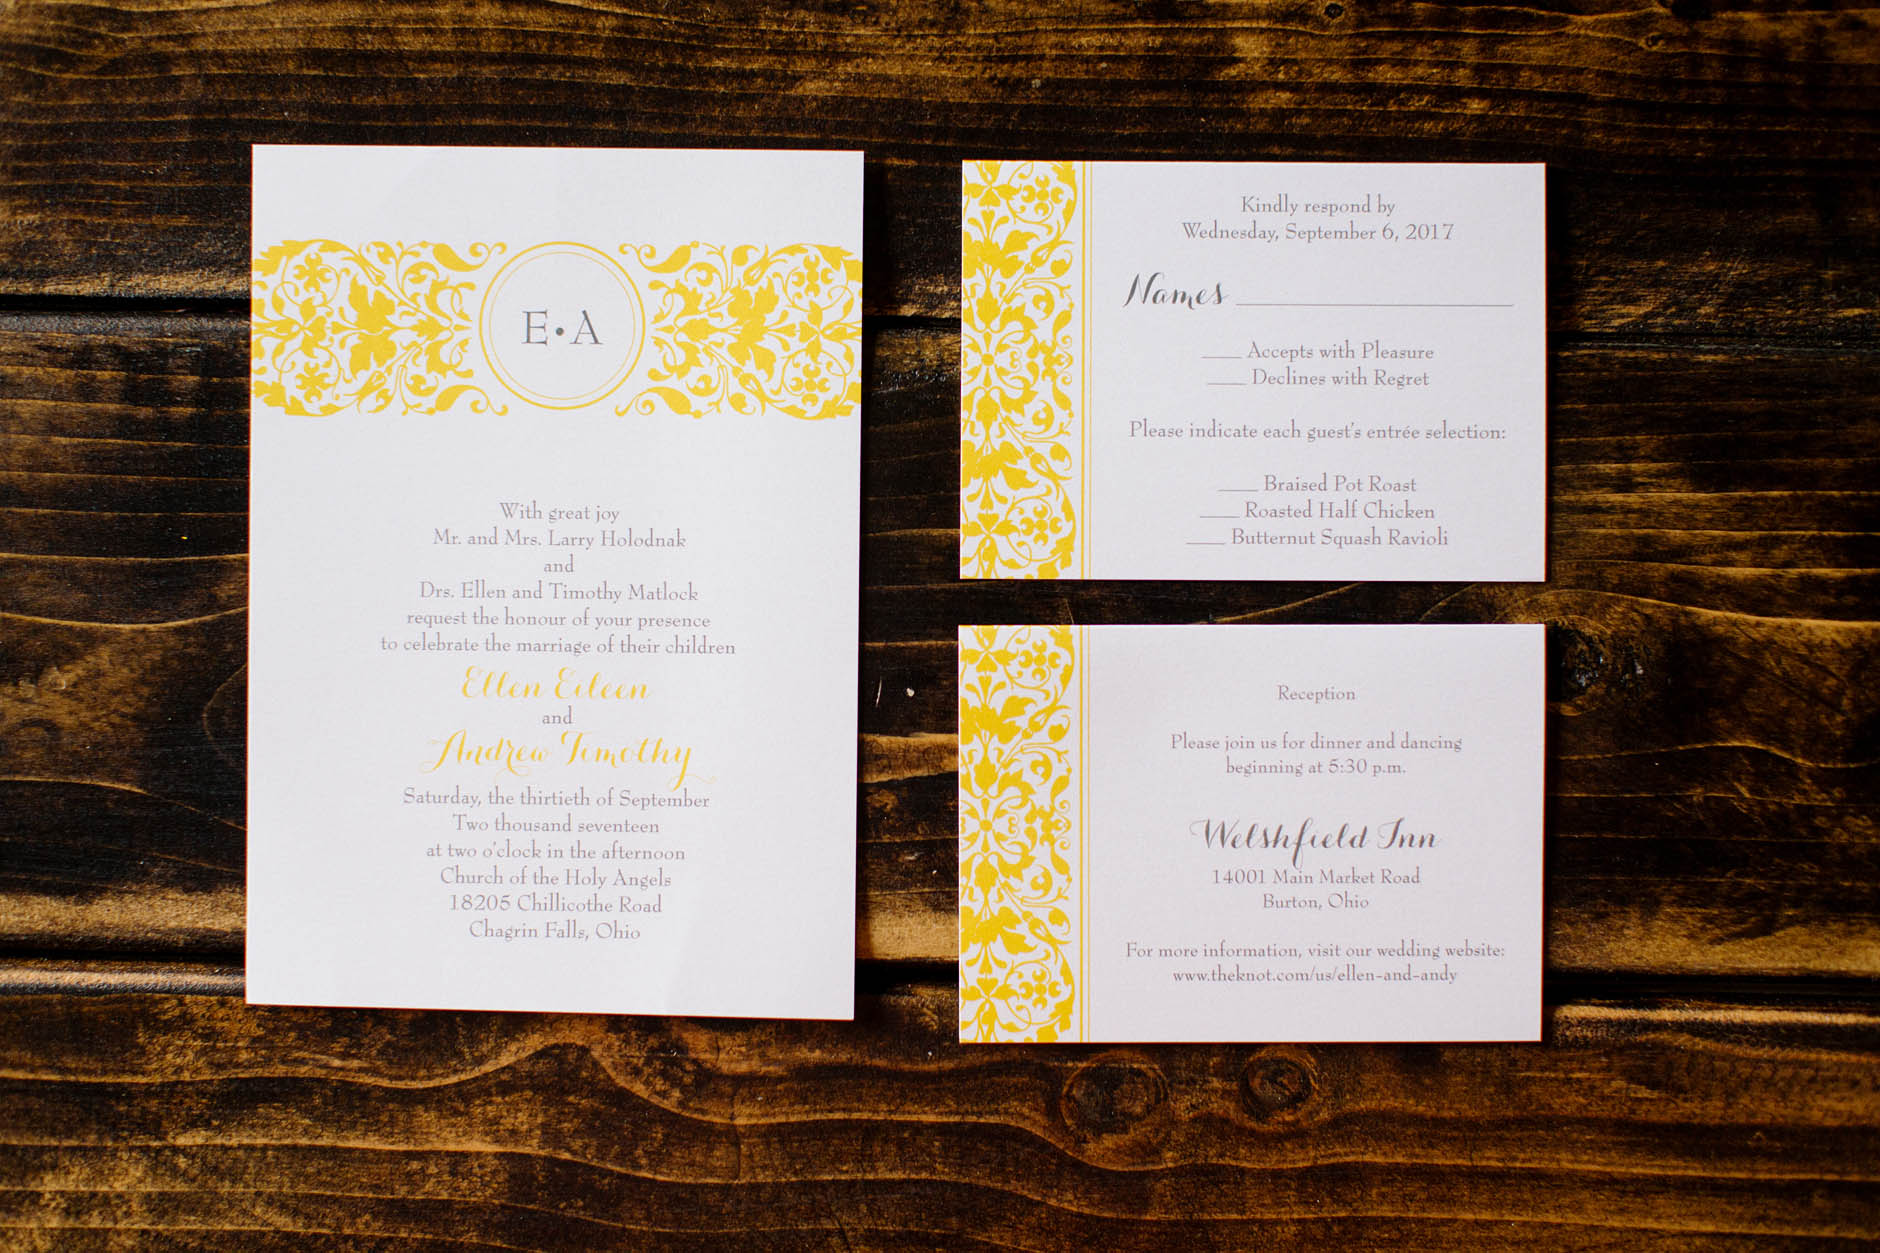 invitation-wedding-suite